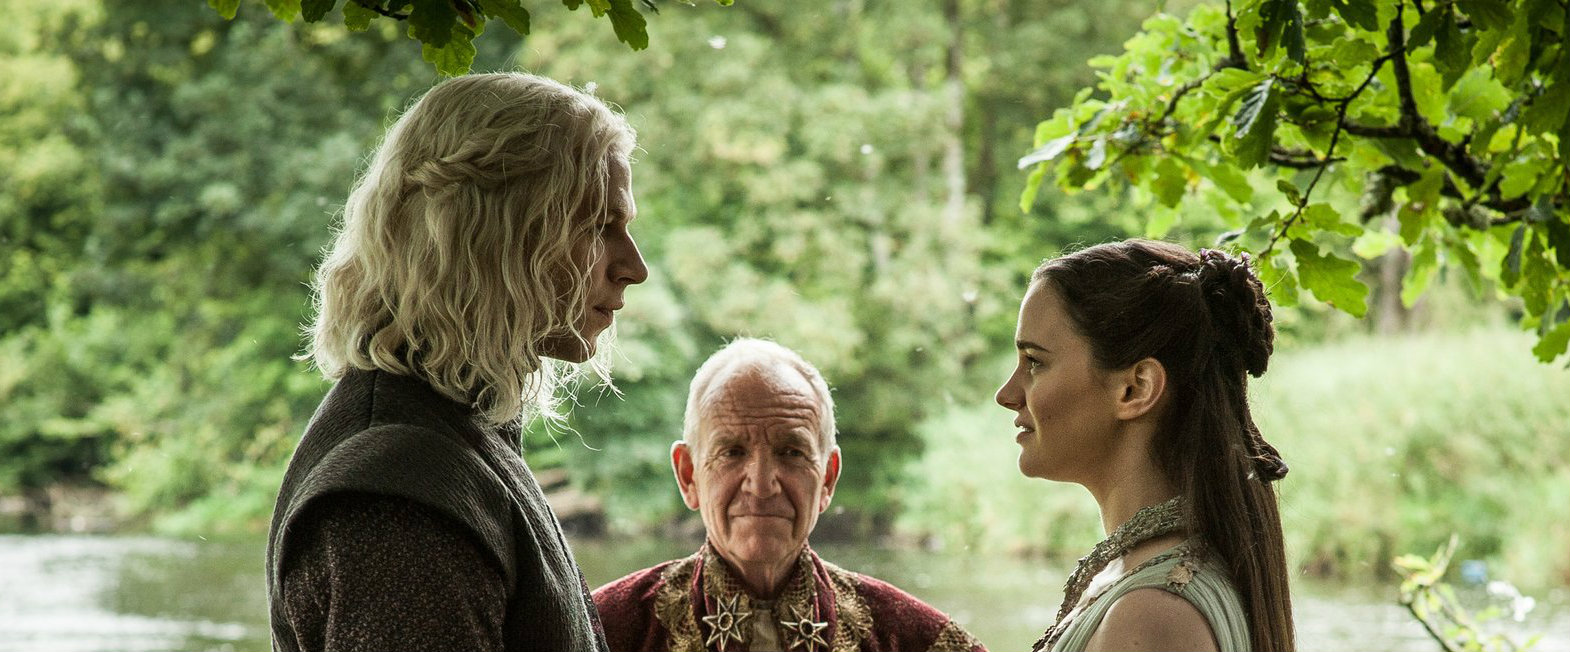 Game Of Thrones Saison 8 Le Retour De Rhaegar Targaryen